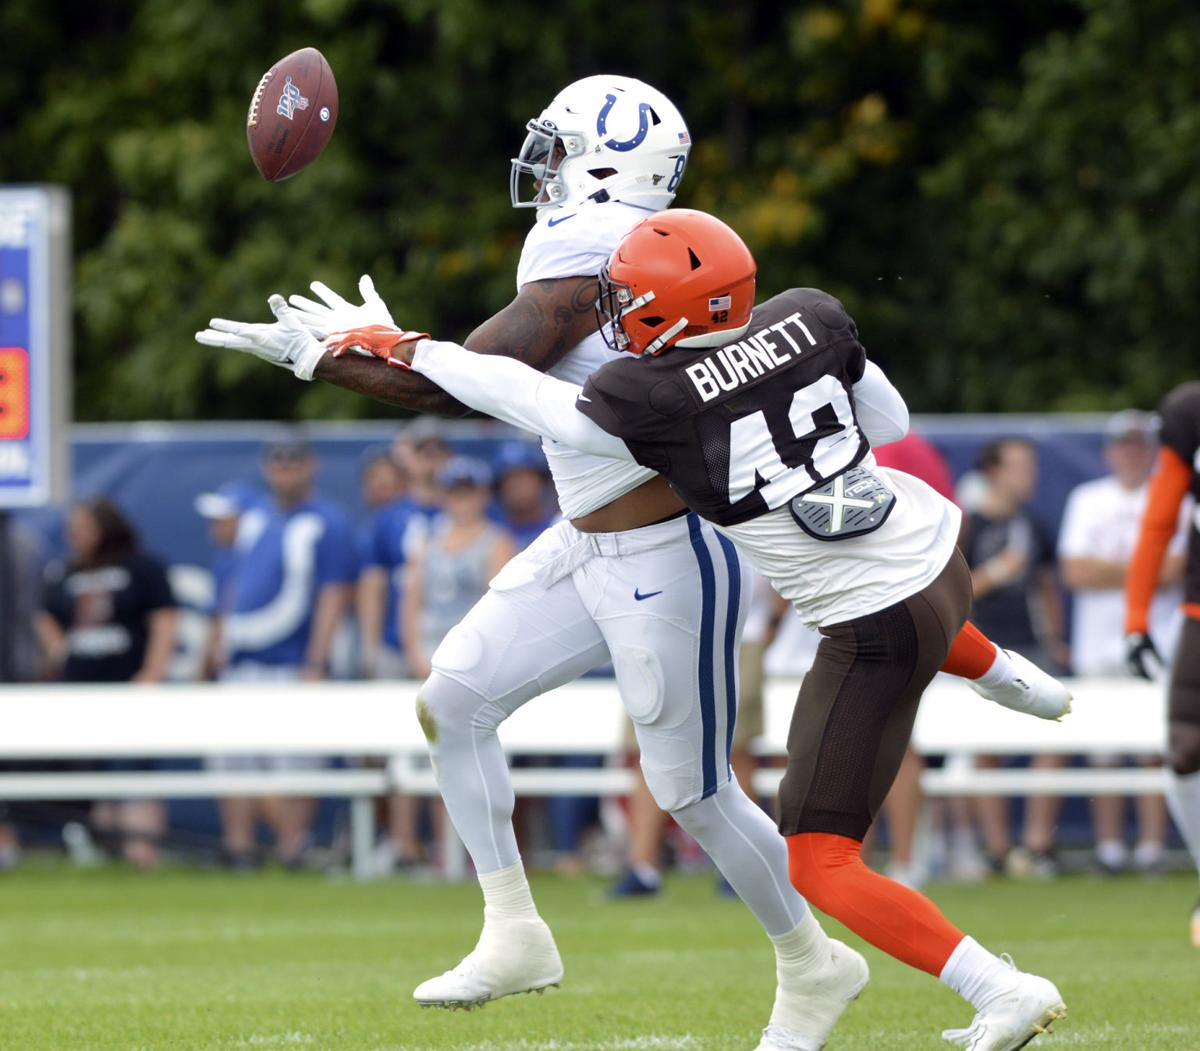 c0dd18a5 PHOTO GALLERY: Colts Training Camp, Day 15 | Colts | heraldbulletin.com